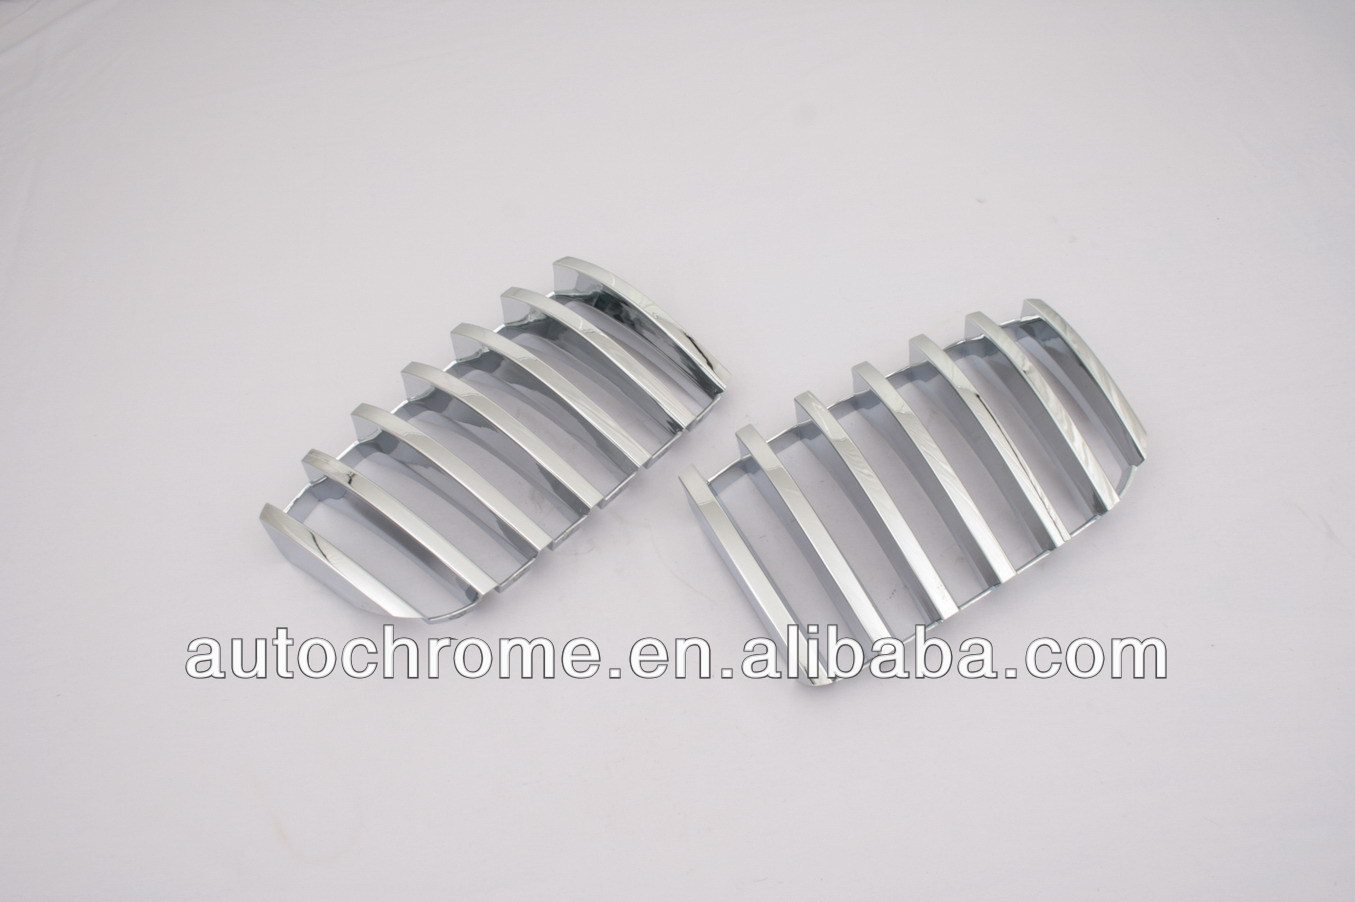 Chrome Front Grille Cover for BMW X3 F25